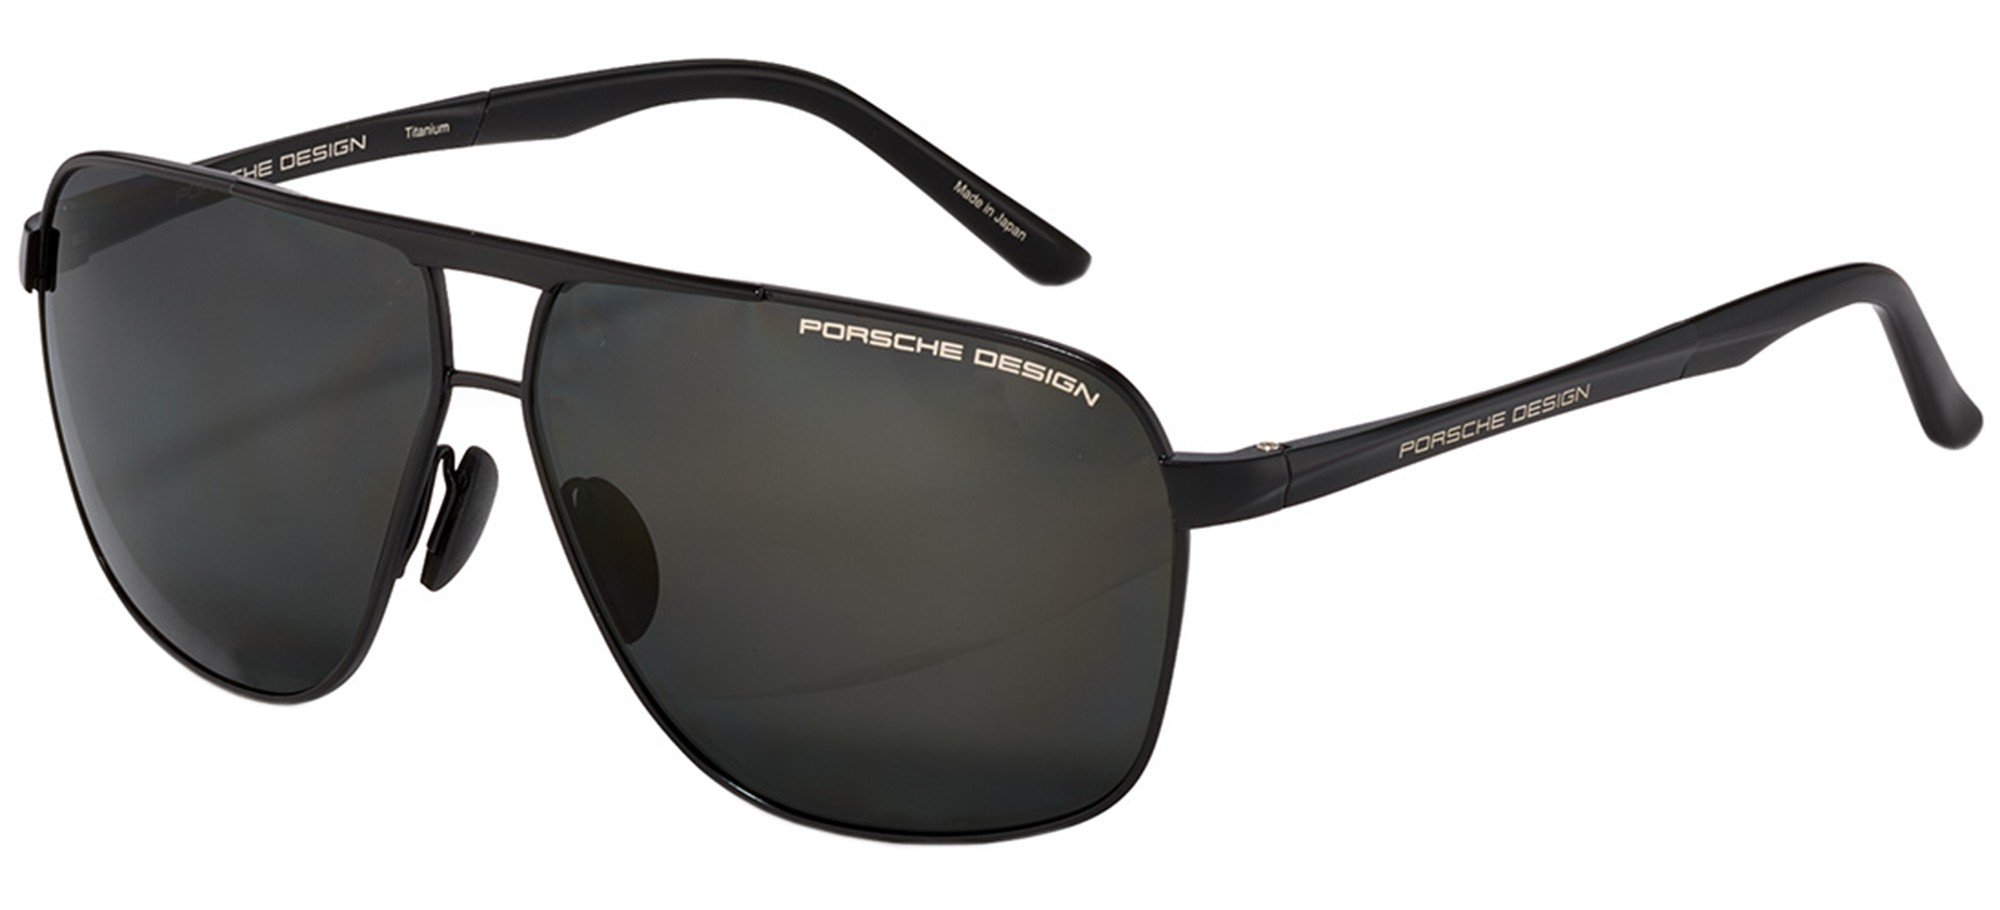 Porsche Design sunglasses P'8665